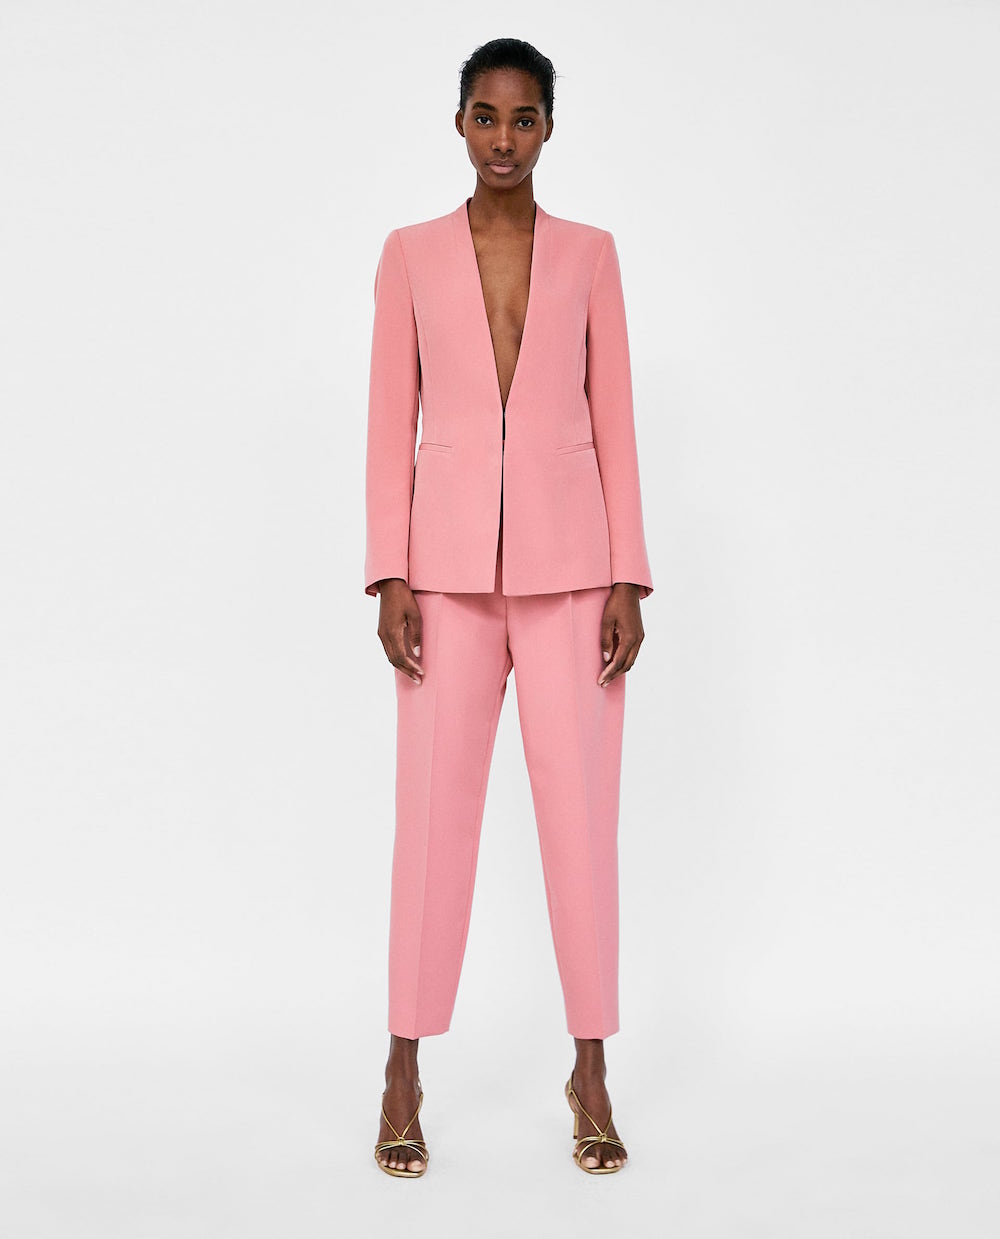 7fdbca1fca This Pink Zara Suit Is Literally Everywhere And It's CEO Chic